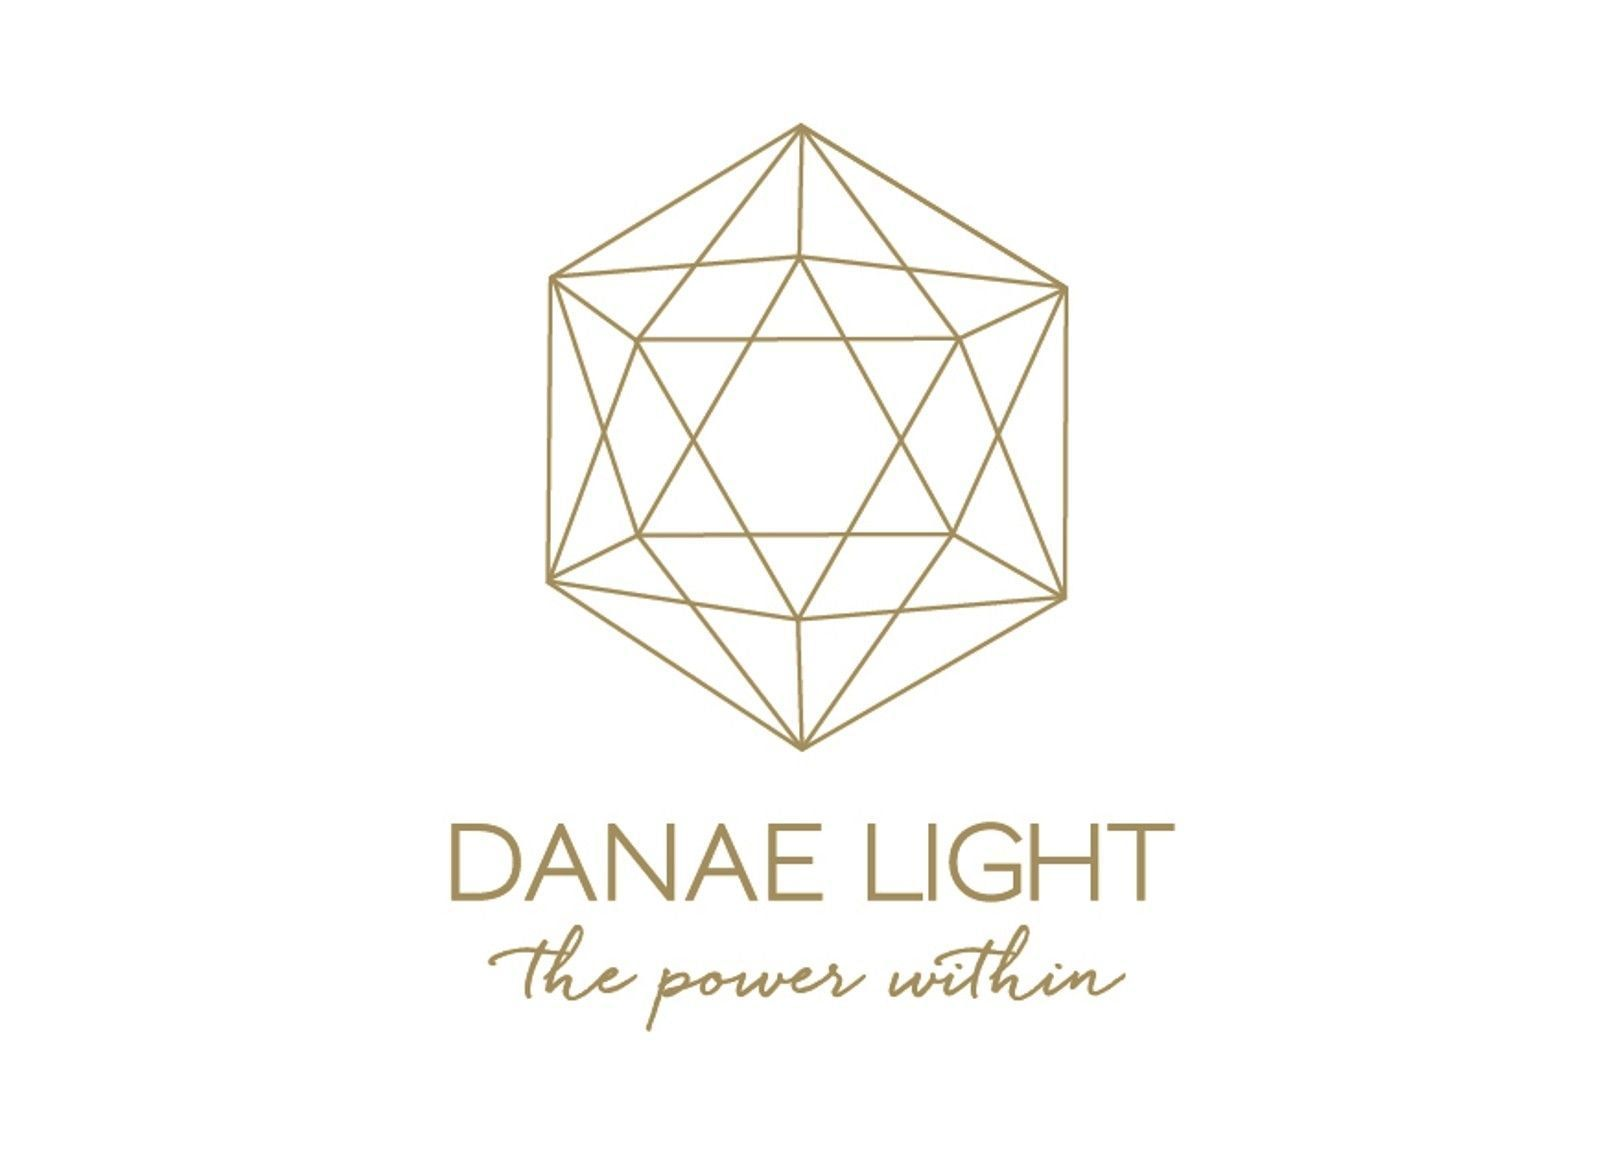 Danae Light